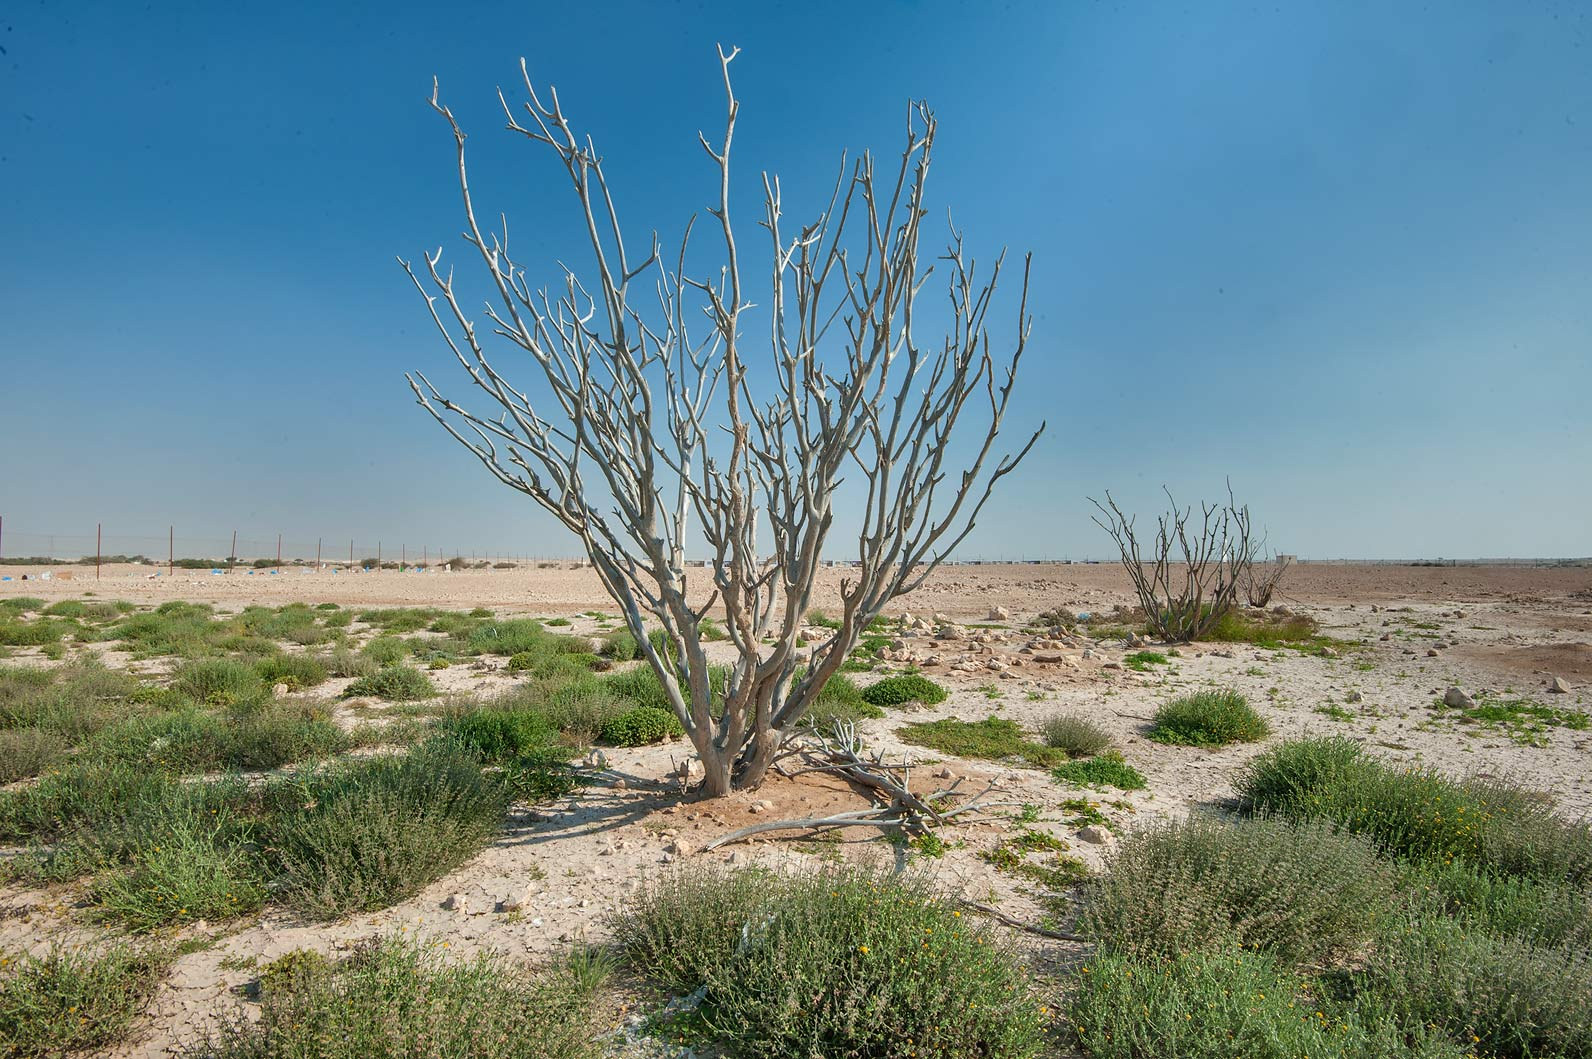 Dry trees in a roadside depression in Rawdat Rashed. Qatar